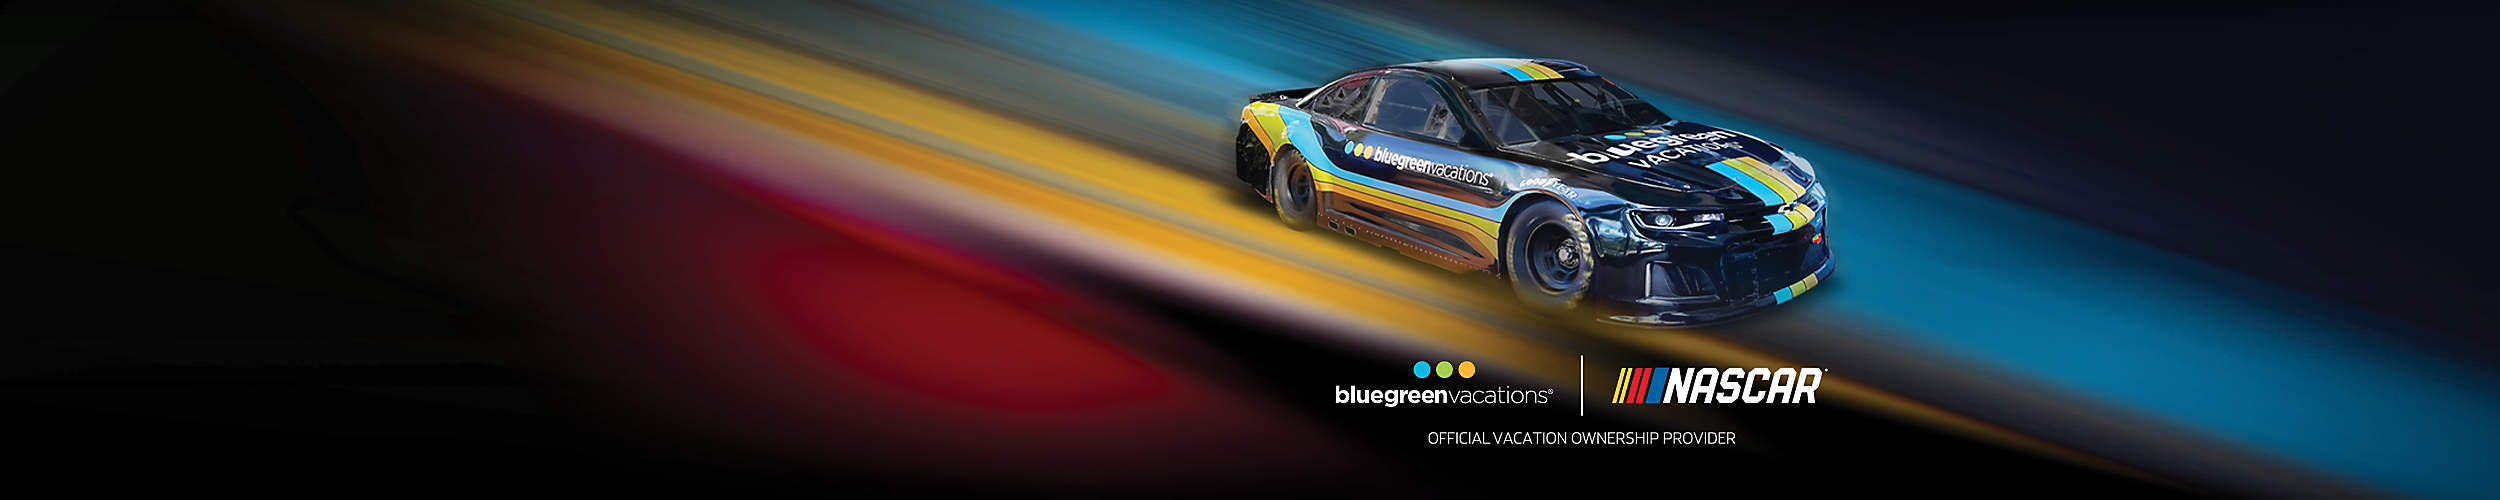 Bluegreen Vacations Official Partnership with Nascar